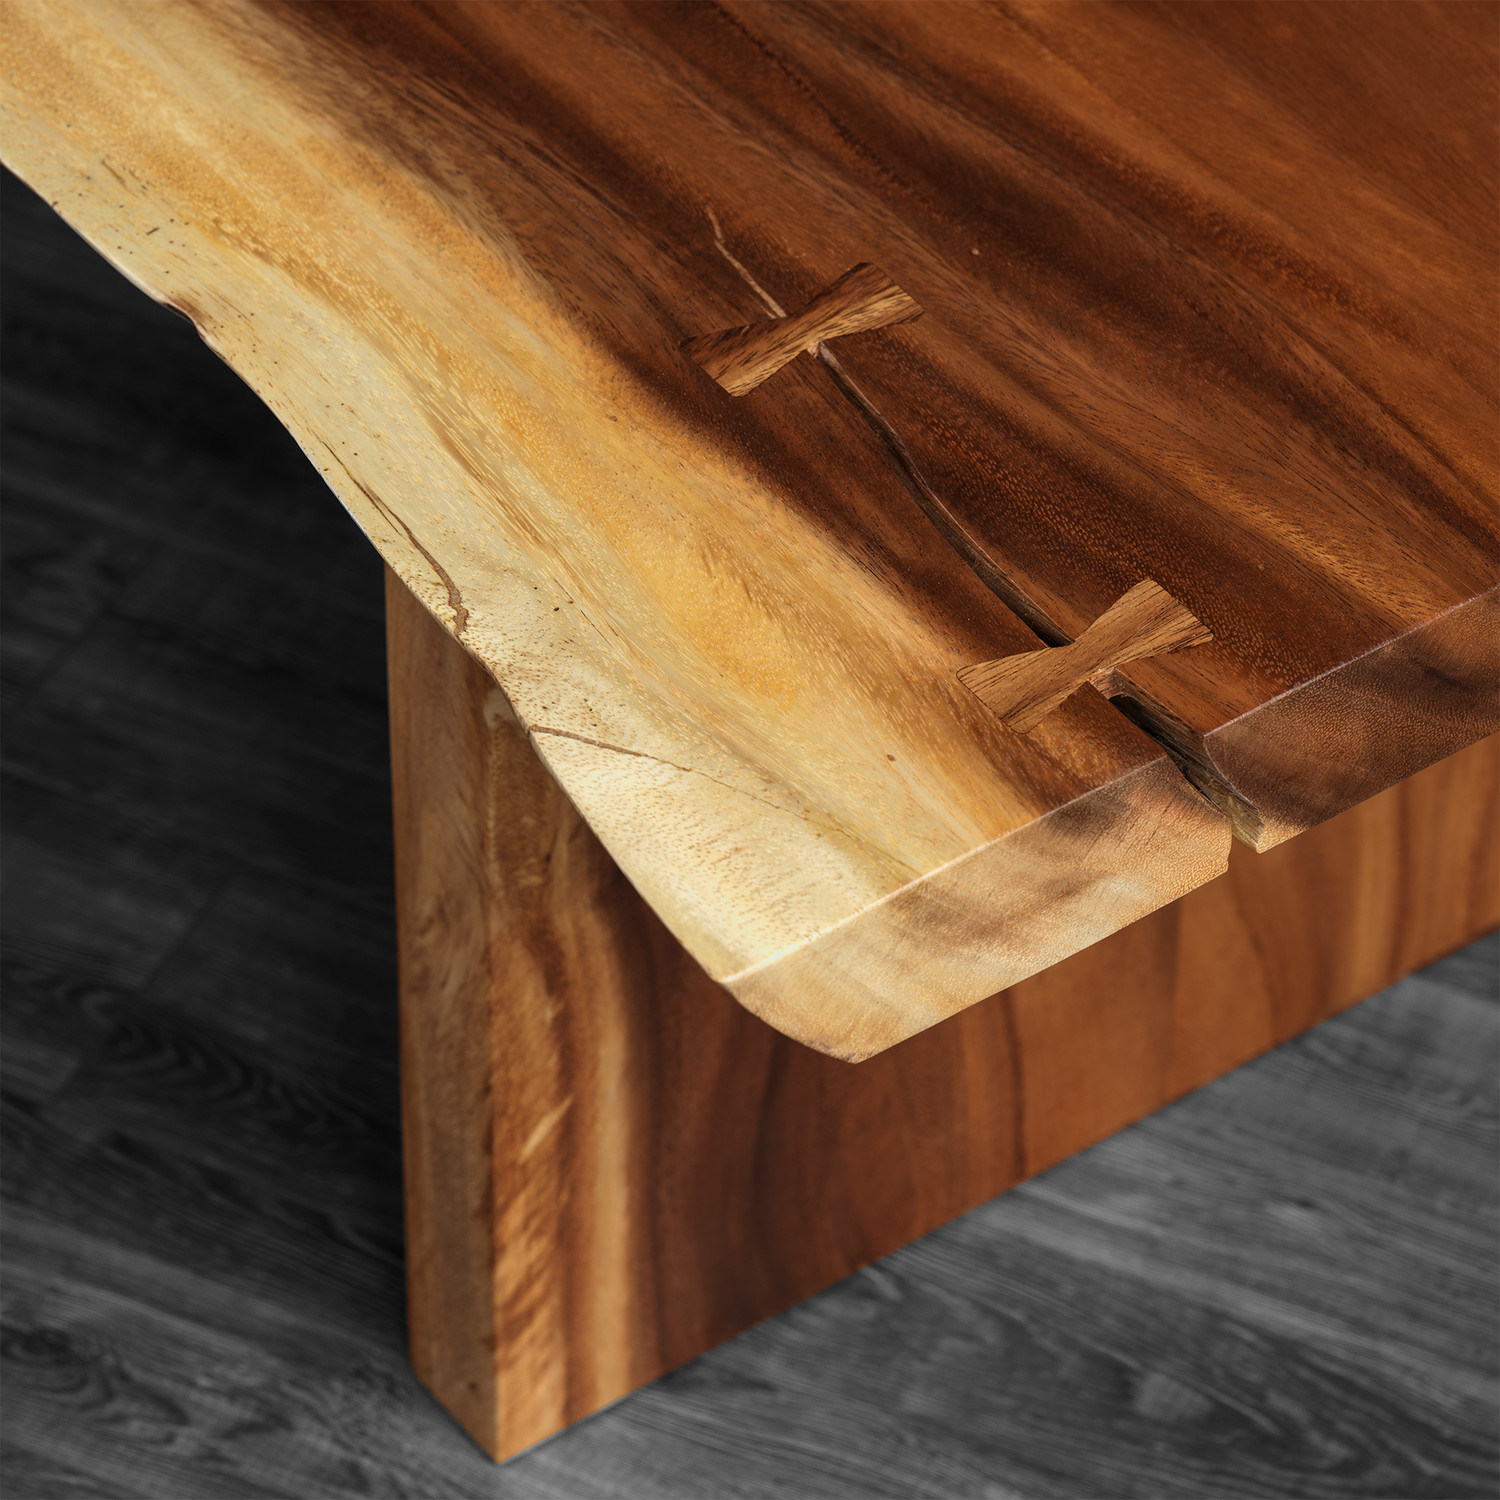 Freeform Suar Wood Coffee Table Wooden Legs artemano Touch